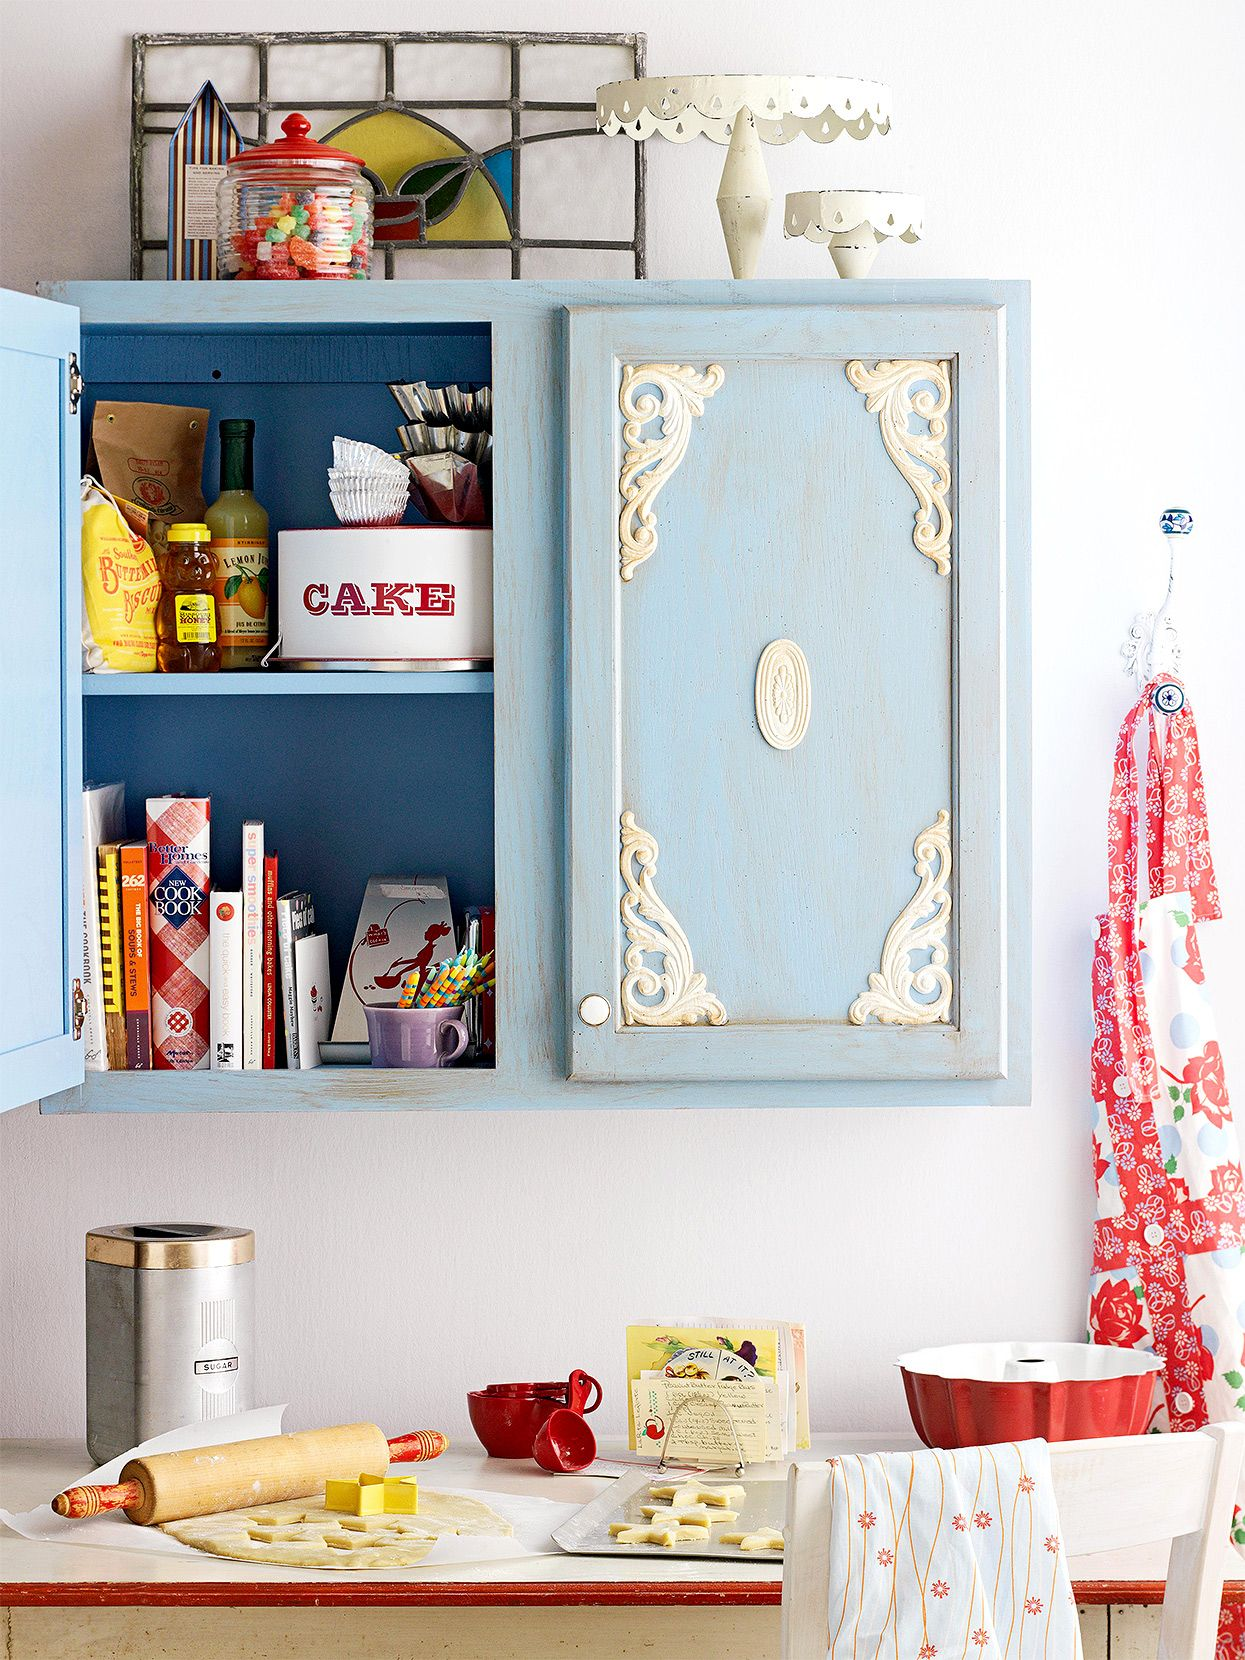 26 Diy Ways To Update Your Kitchen Cabinets Without Replacing Them In 2020 Shabby Chic Kitchen Cabinets Diy Kitchen Cabinets Kitchen Cabinets Makeover